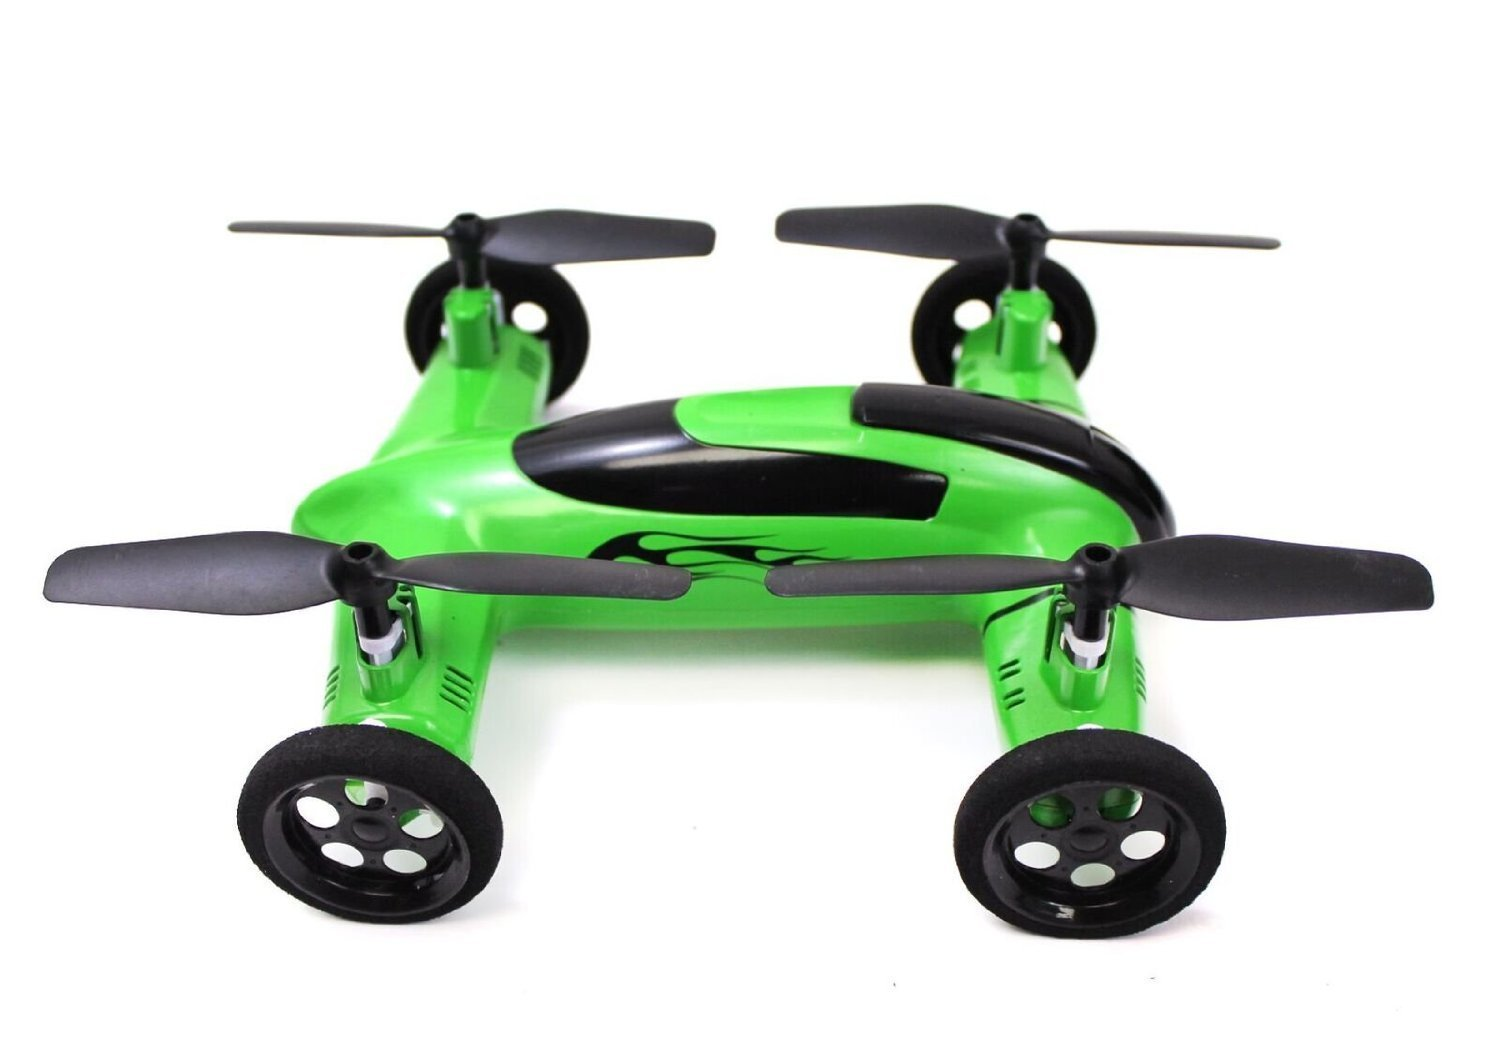 rc cars for sale online with Flycar X9 Rc Remote Control Quadcopter Drone Flying Car By Syma on Bmw I8 Kids Car Licensed Concept White also Remote Control Helicopter Toys further ESU 31098 Diesellok BR 245 030 weiss DB digital Sound Rauch DC AC Spur H0 further The Car FLY All Terrain SkyRunner Buggy Quick Porsche Soar Sky 55mph likewise Toyota Corolla Ae 111 Gt.